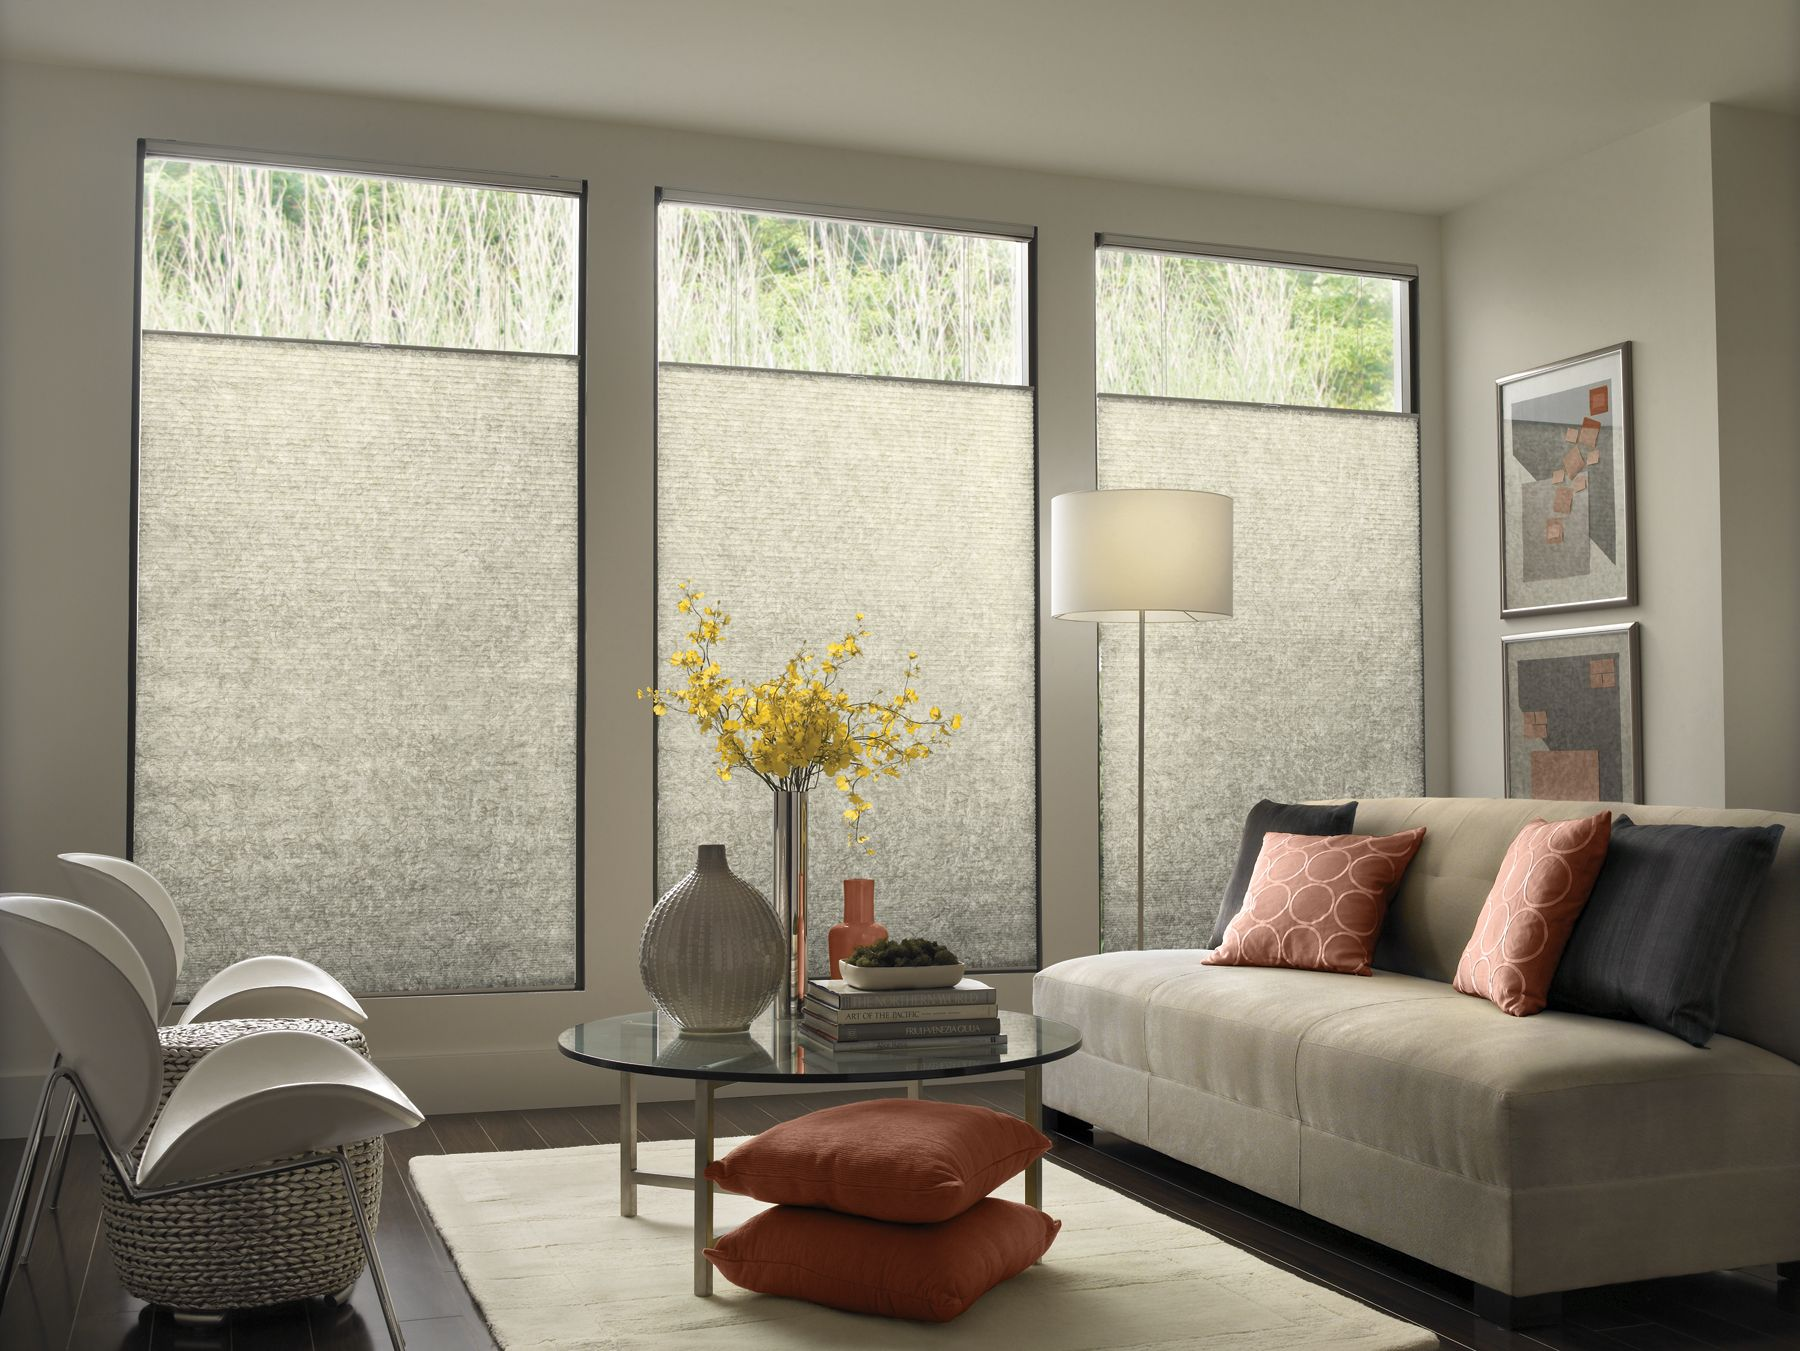 Modern Window Treatments For Living Room: Introduction and Ideas